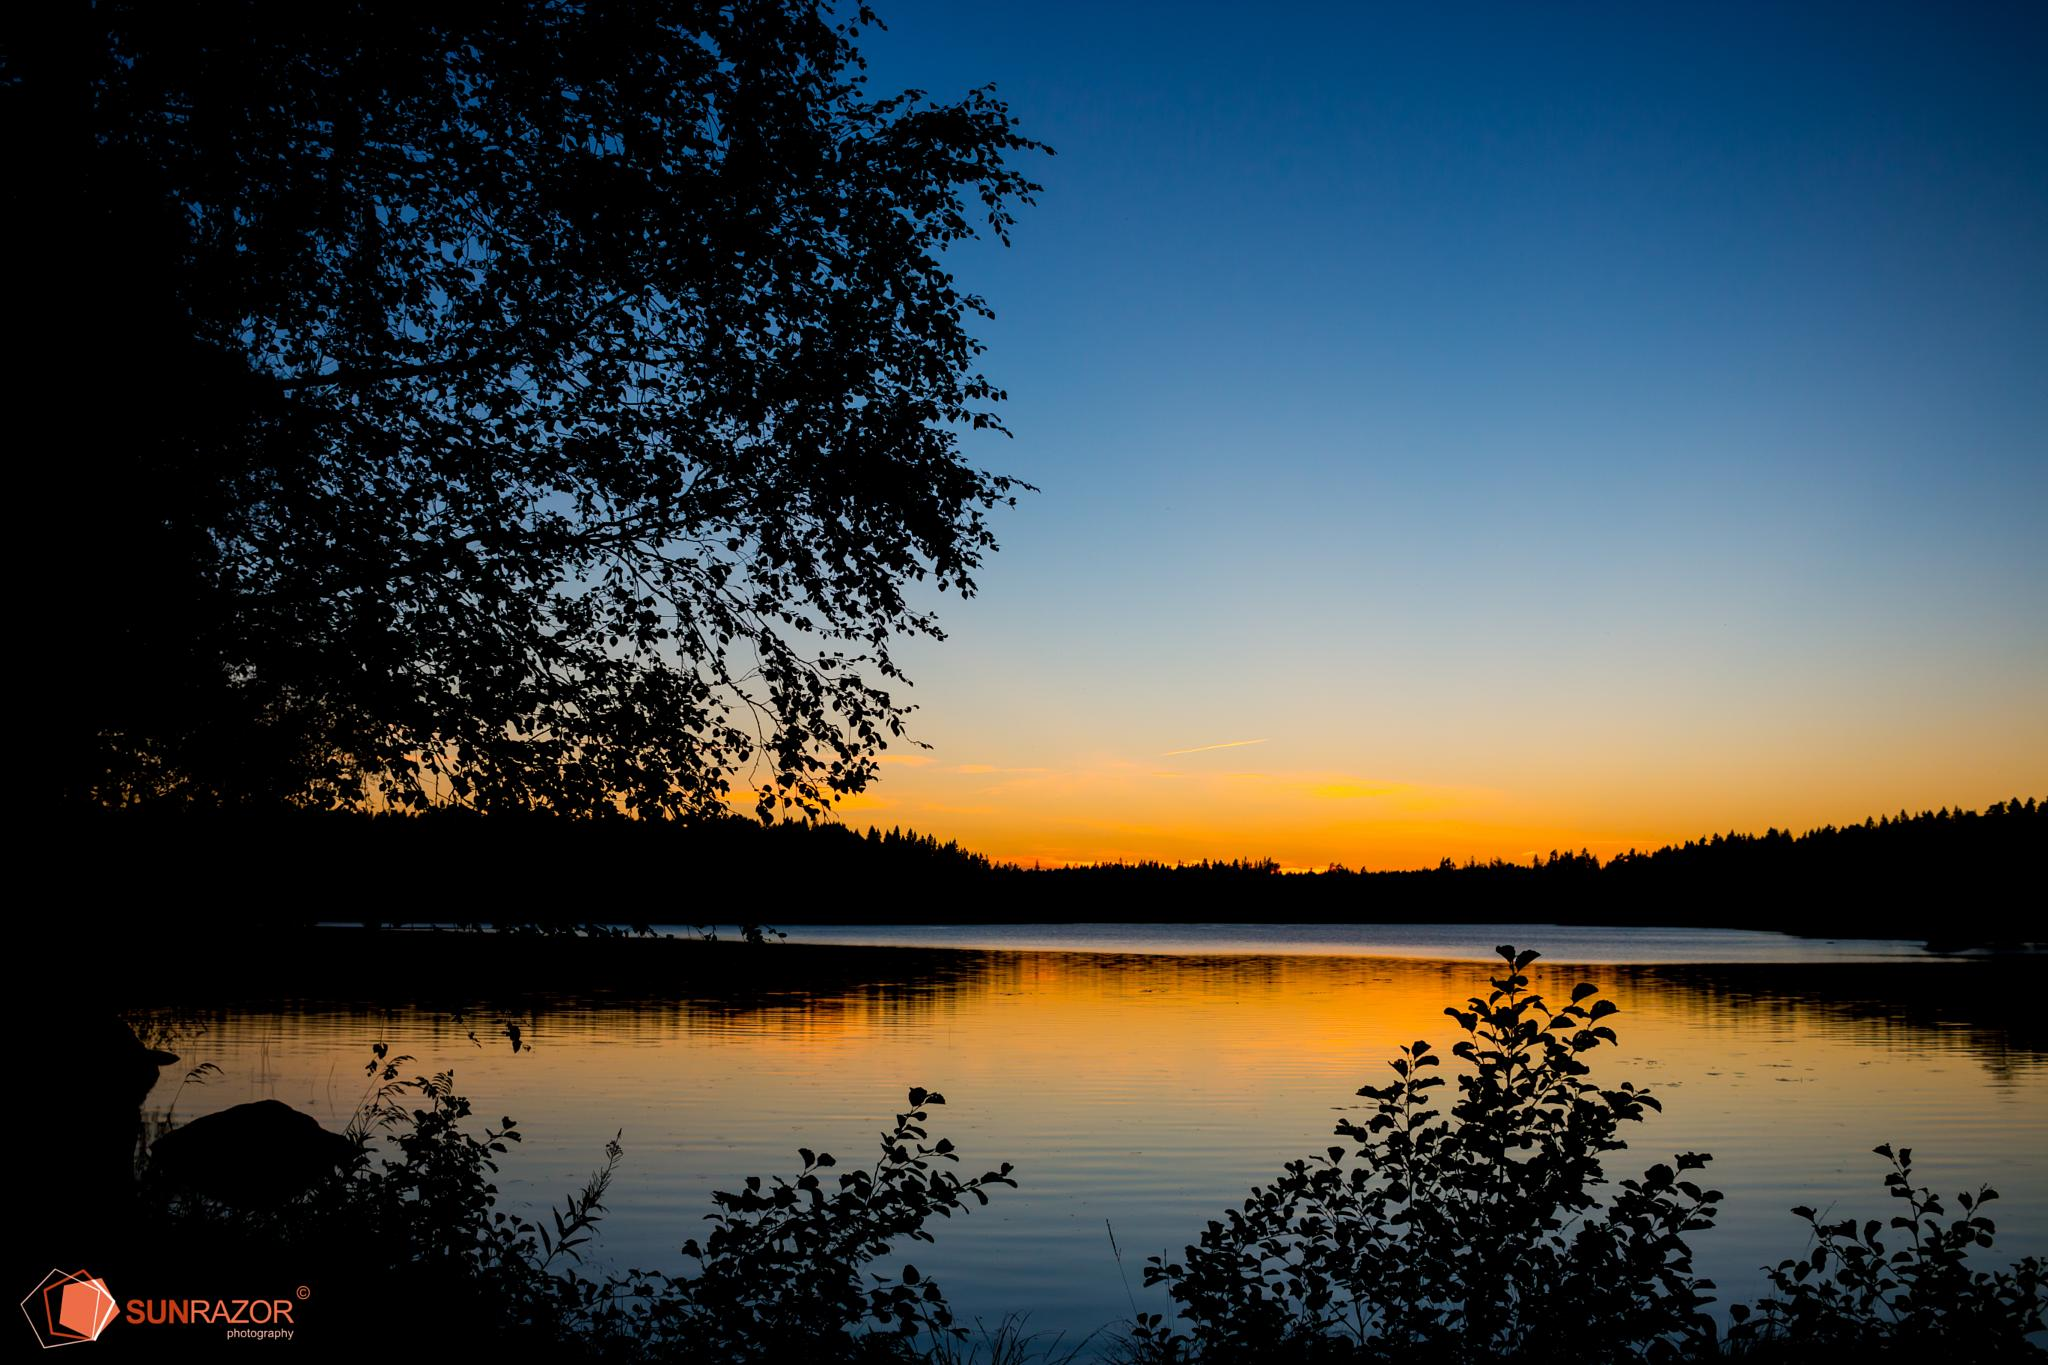 Tranquility Night by Sunrazor